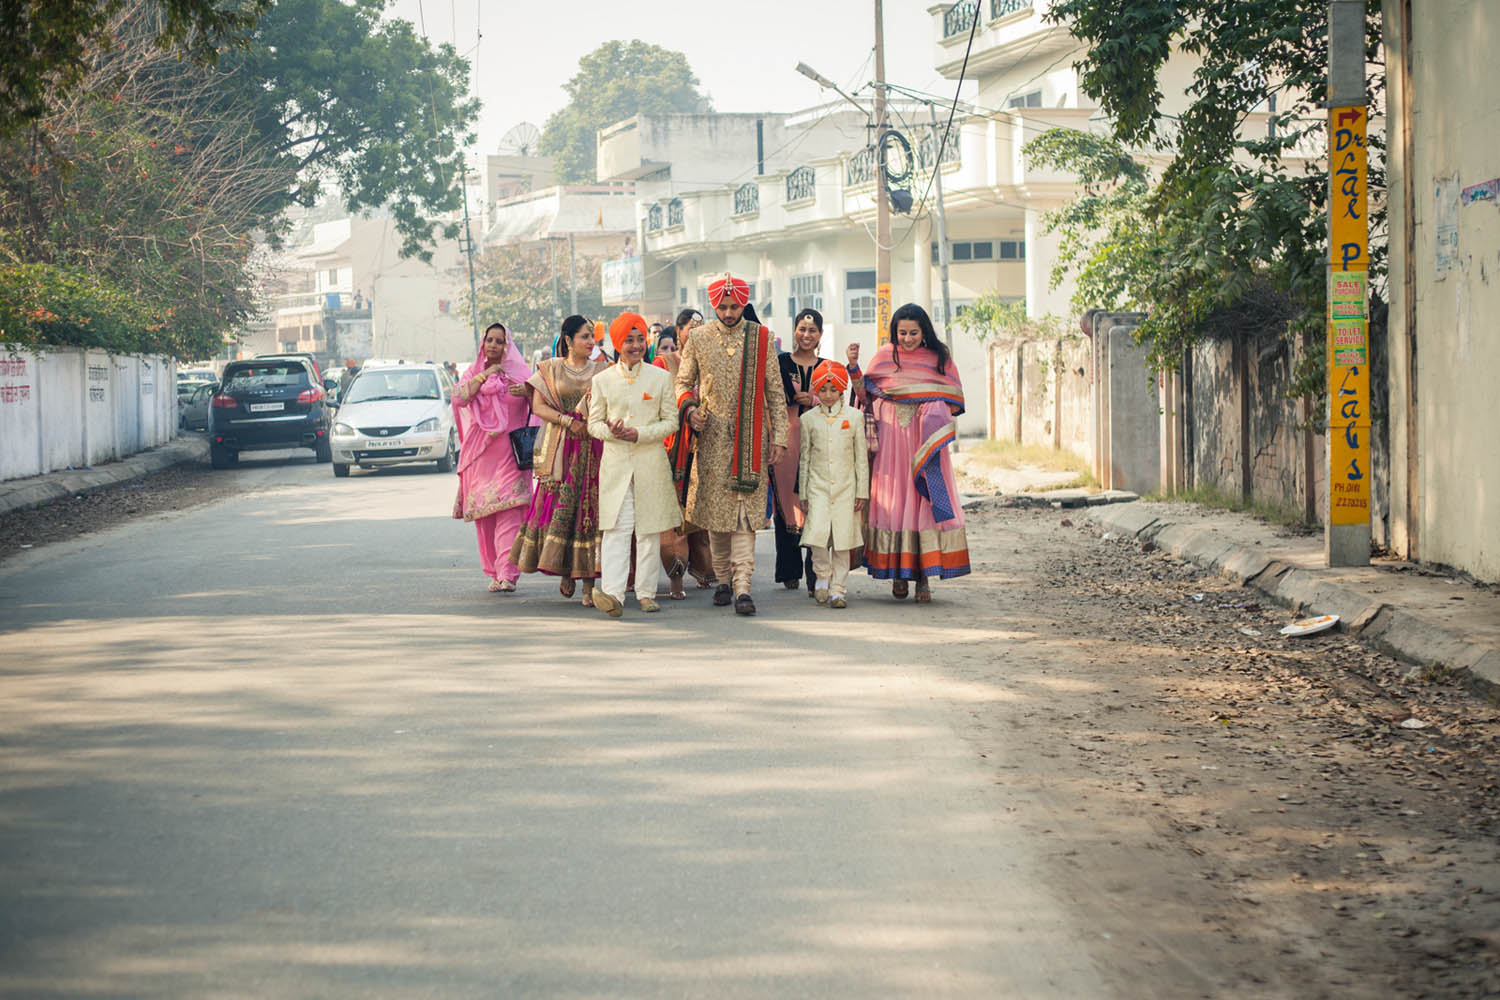 punjab_wedding31.jpg